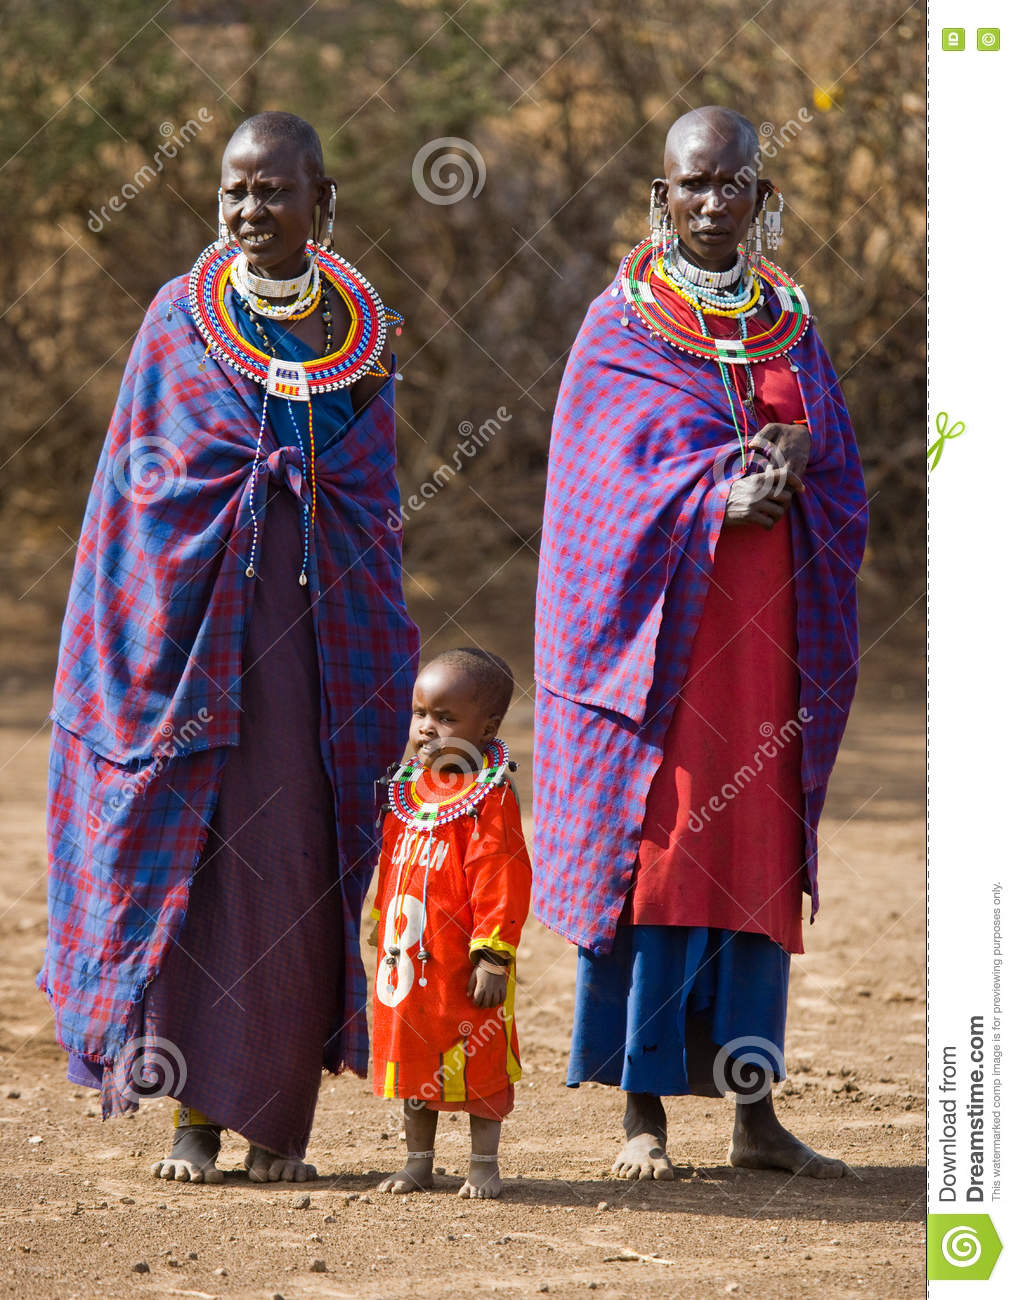 Maasai Woman In Traditional Clothing. Editorial Stock Image - Image ... e537a1eab2